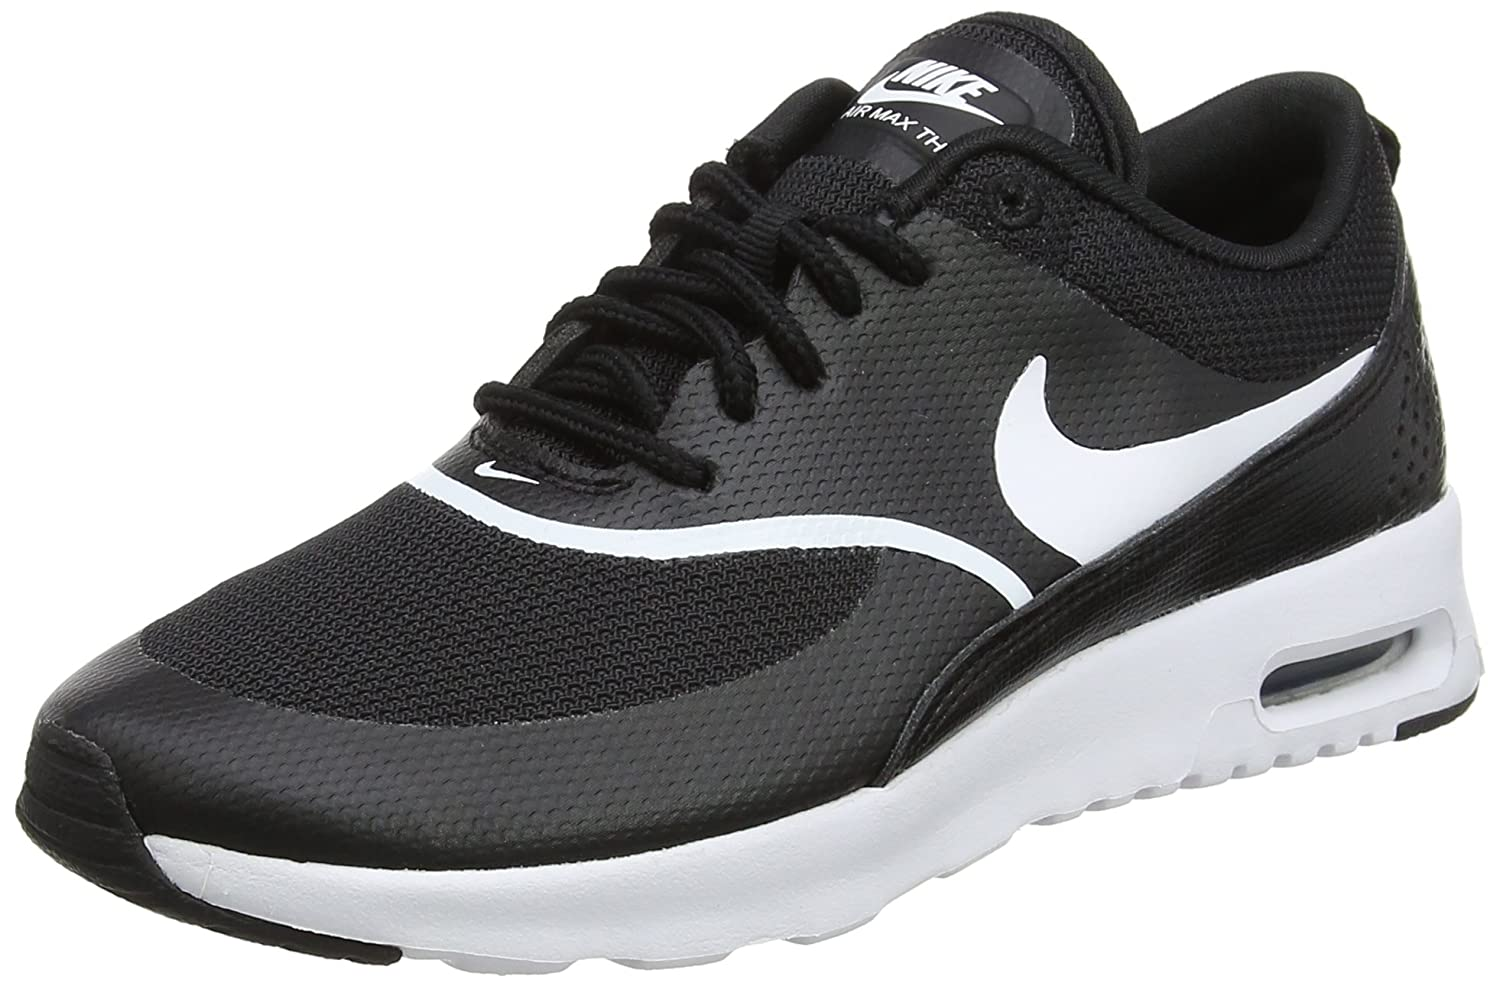 NIKE Air Max Thea, (Black/White Baskets Femme Noir Femme (Black/White Thea, 028) cb6c712 - reprogrammed.space